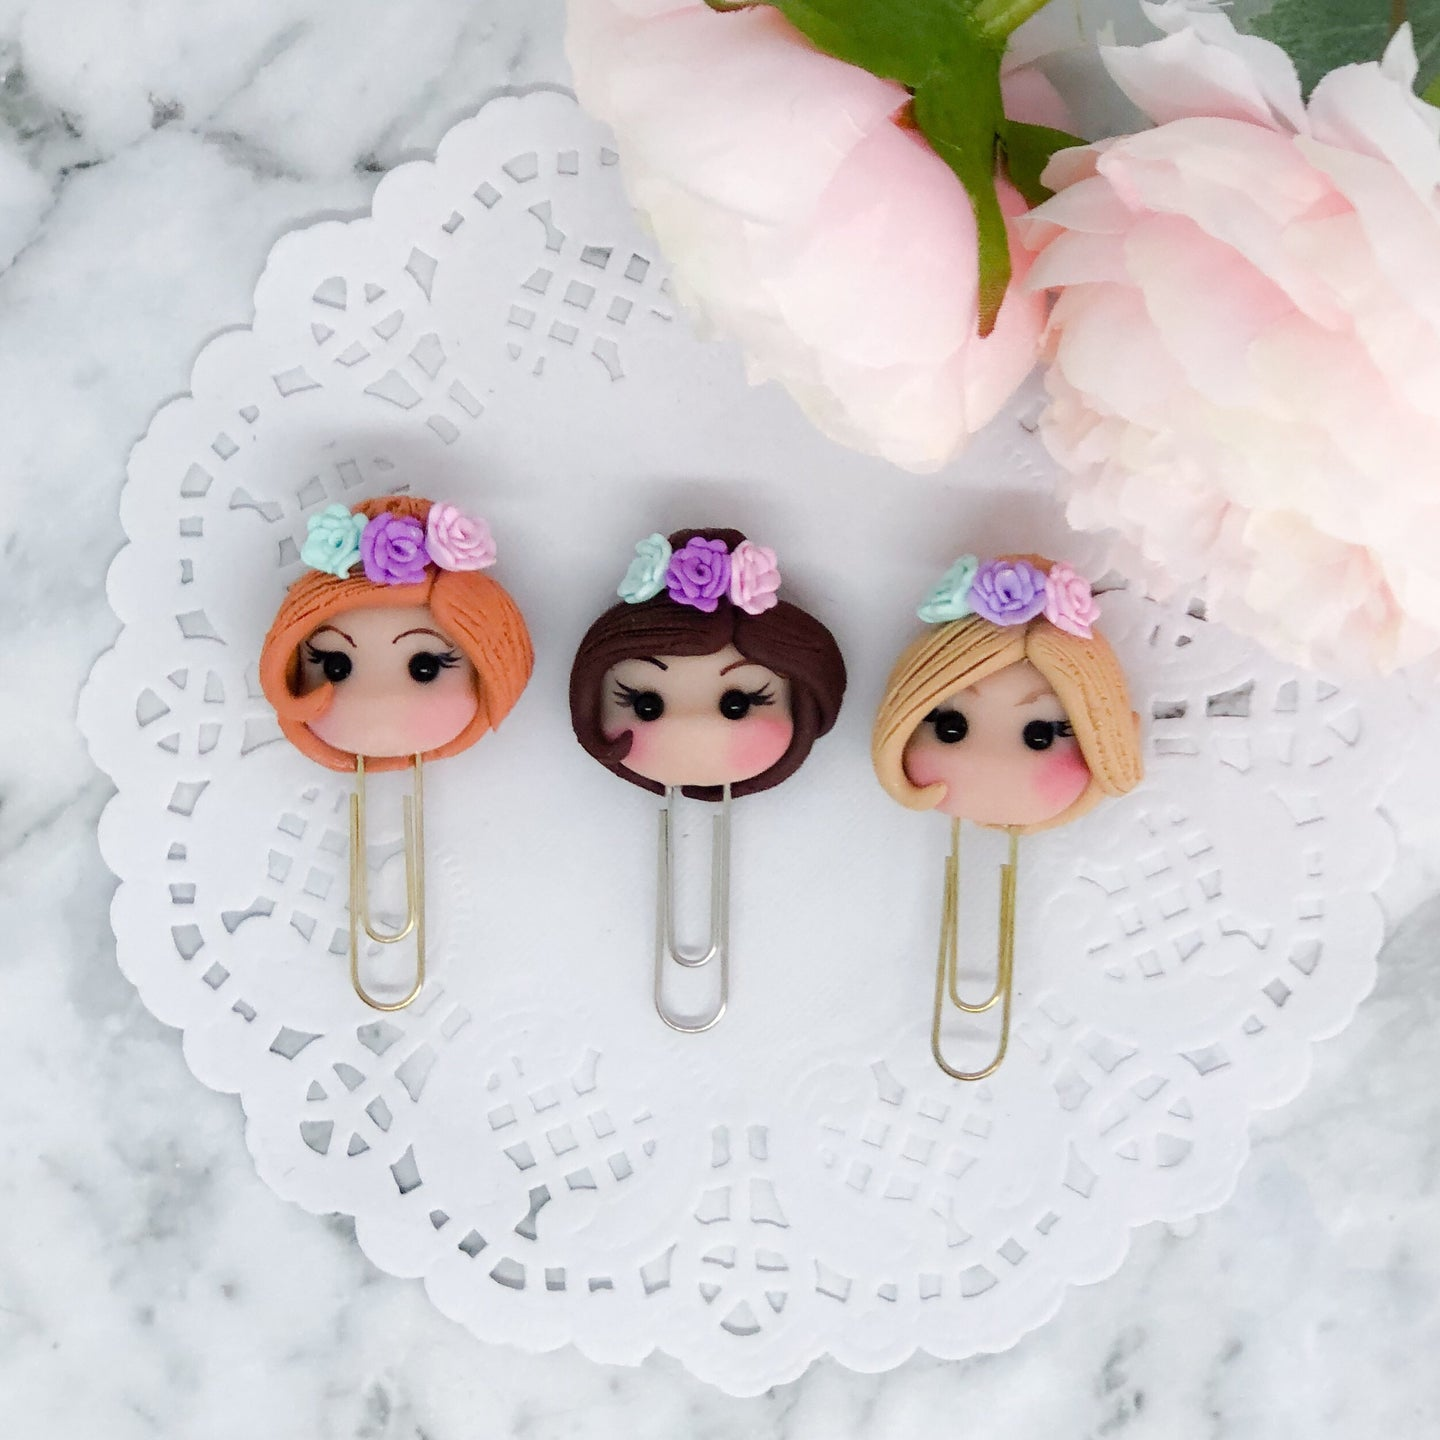 Flower Crown Planner Babe Paperclip